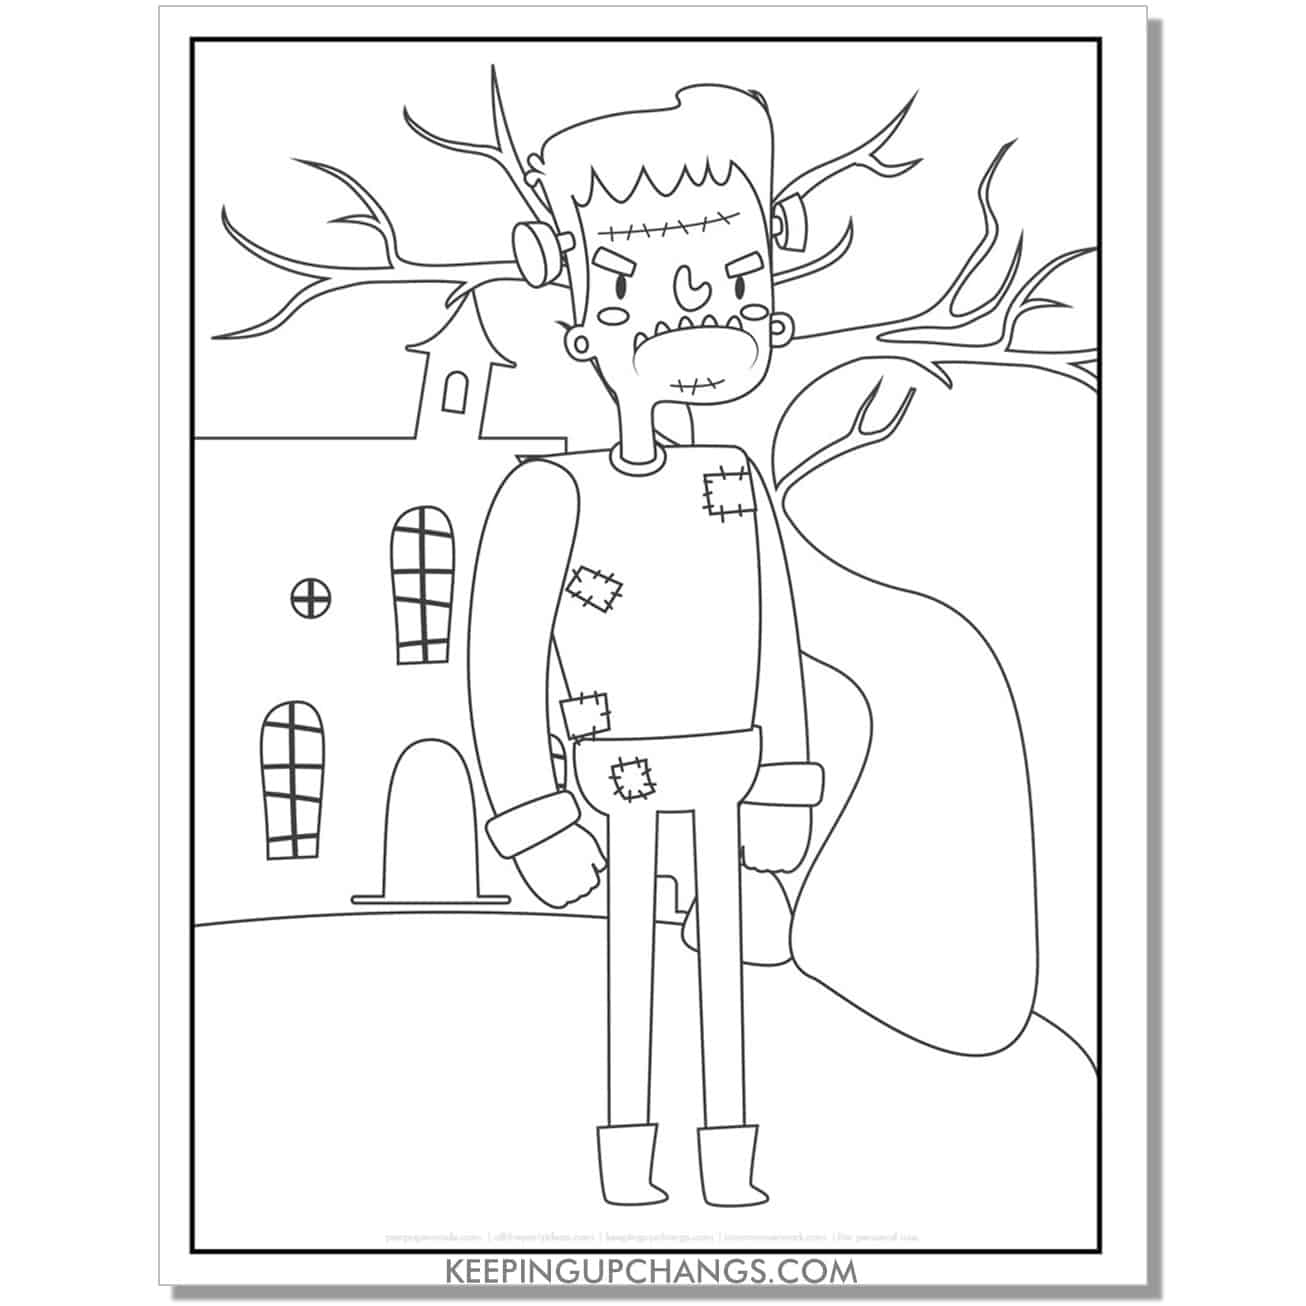 free angry frankenstein with haunted house coloring page for kids.